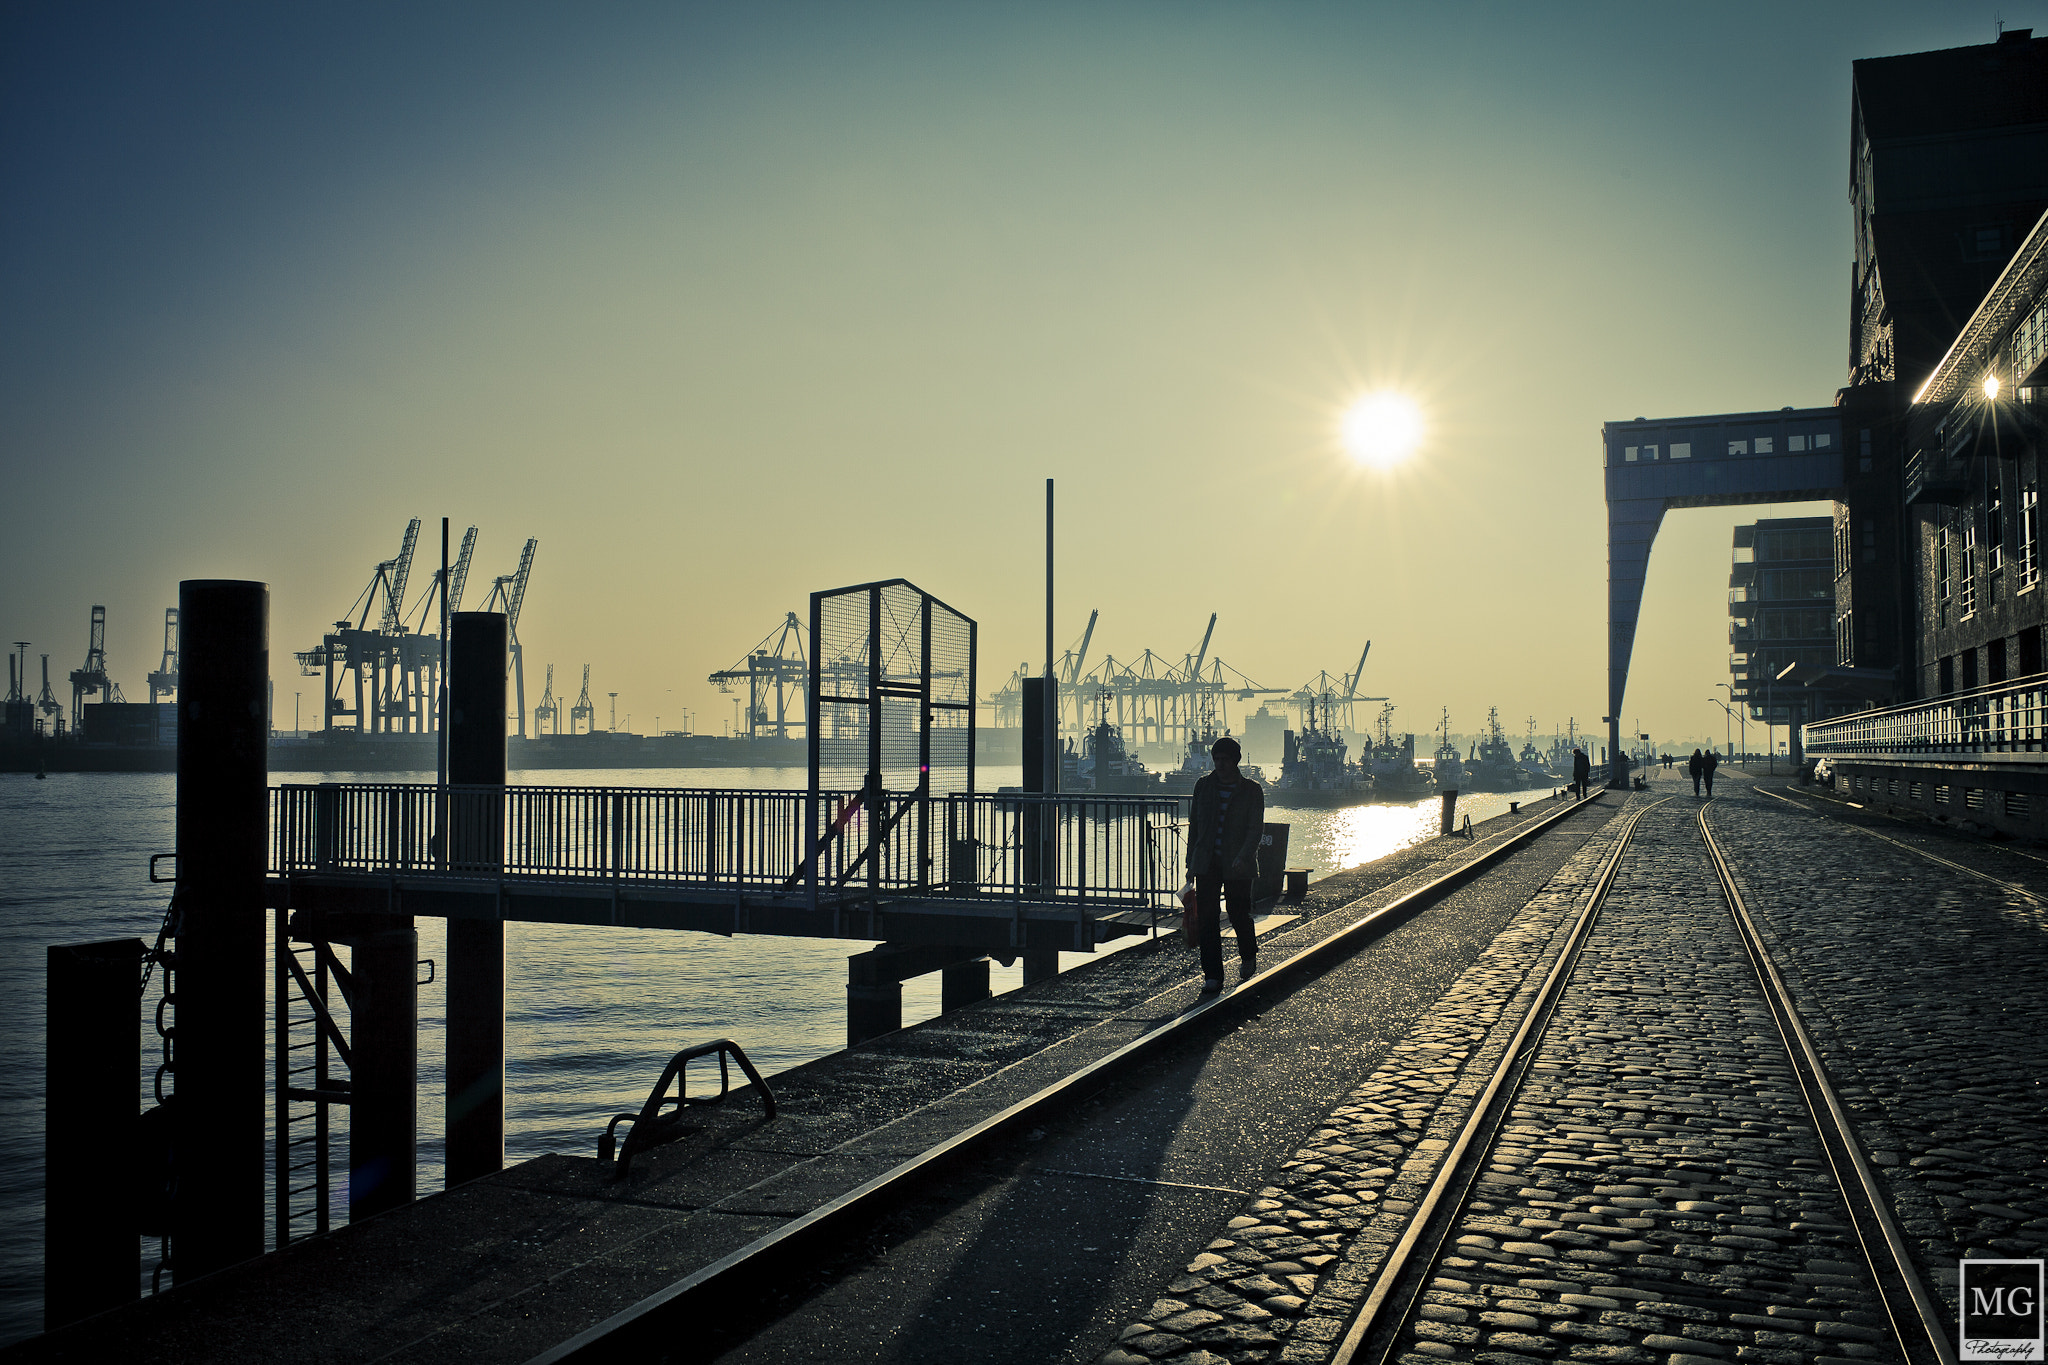 Photograph Pier Silhouettes by Marco Guerreiro on 500px